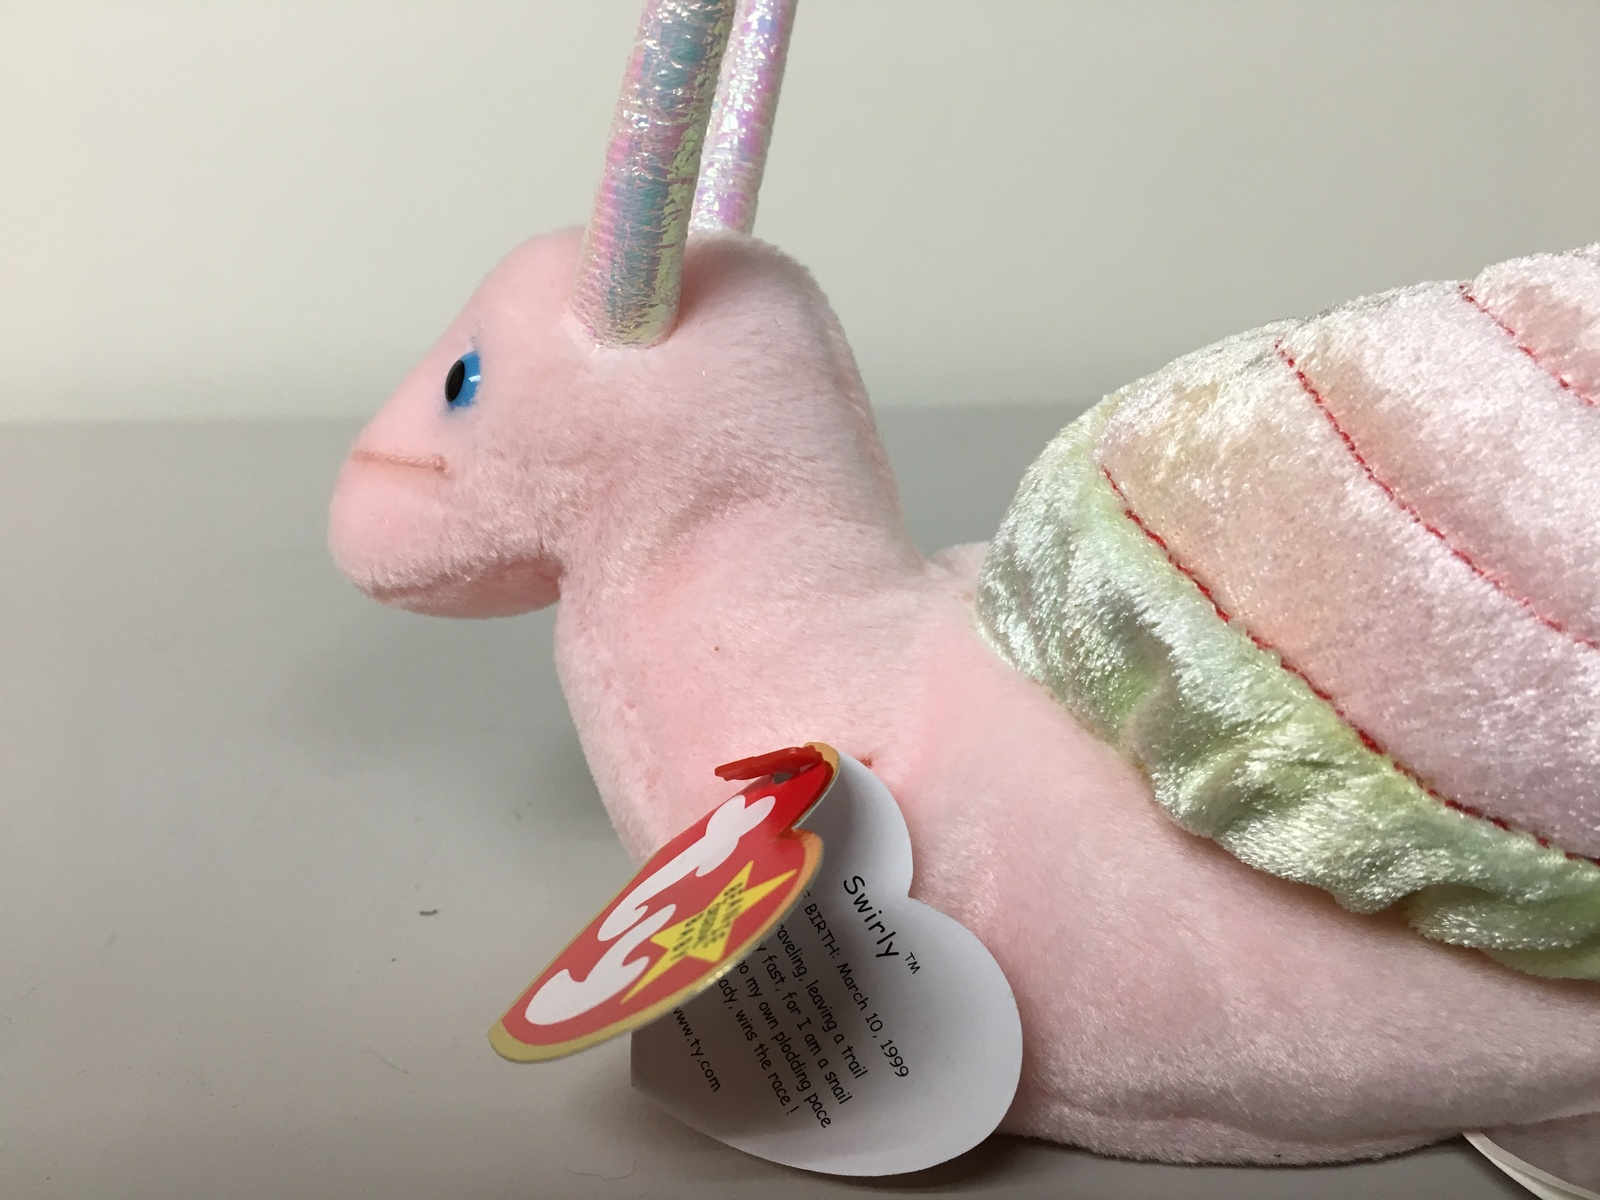 Ty Beanie Babies - Swirly the Snail image 12